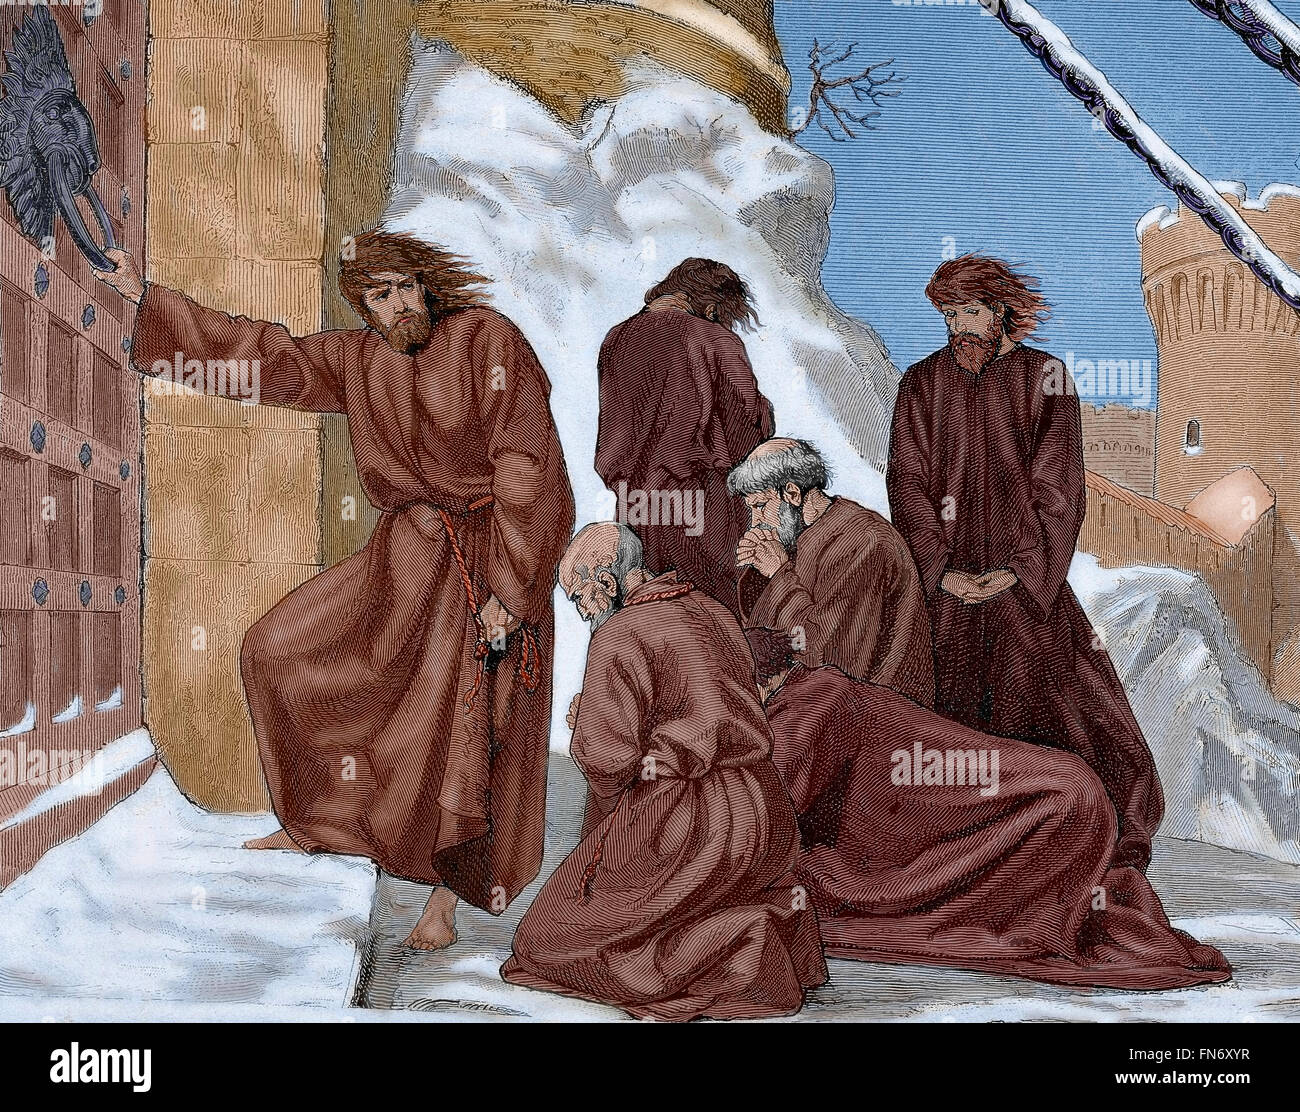 Henry IV (1050-1106). Holy Roman emperor. Henry IV at the entrance of the castle of Canossa (1077) to obtain the - Stock Image